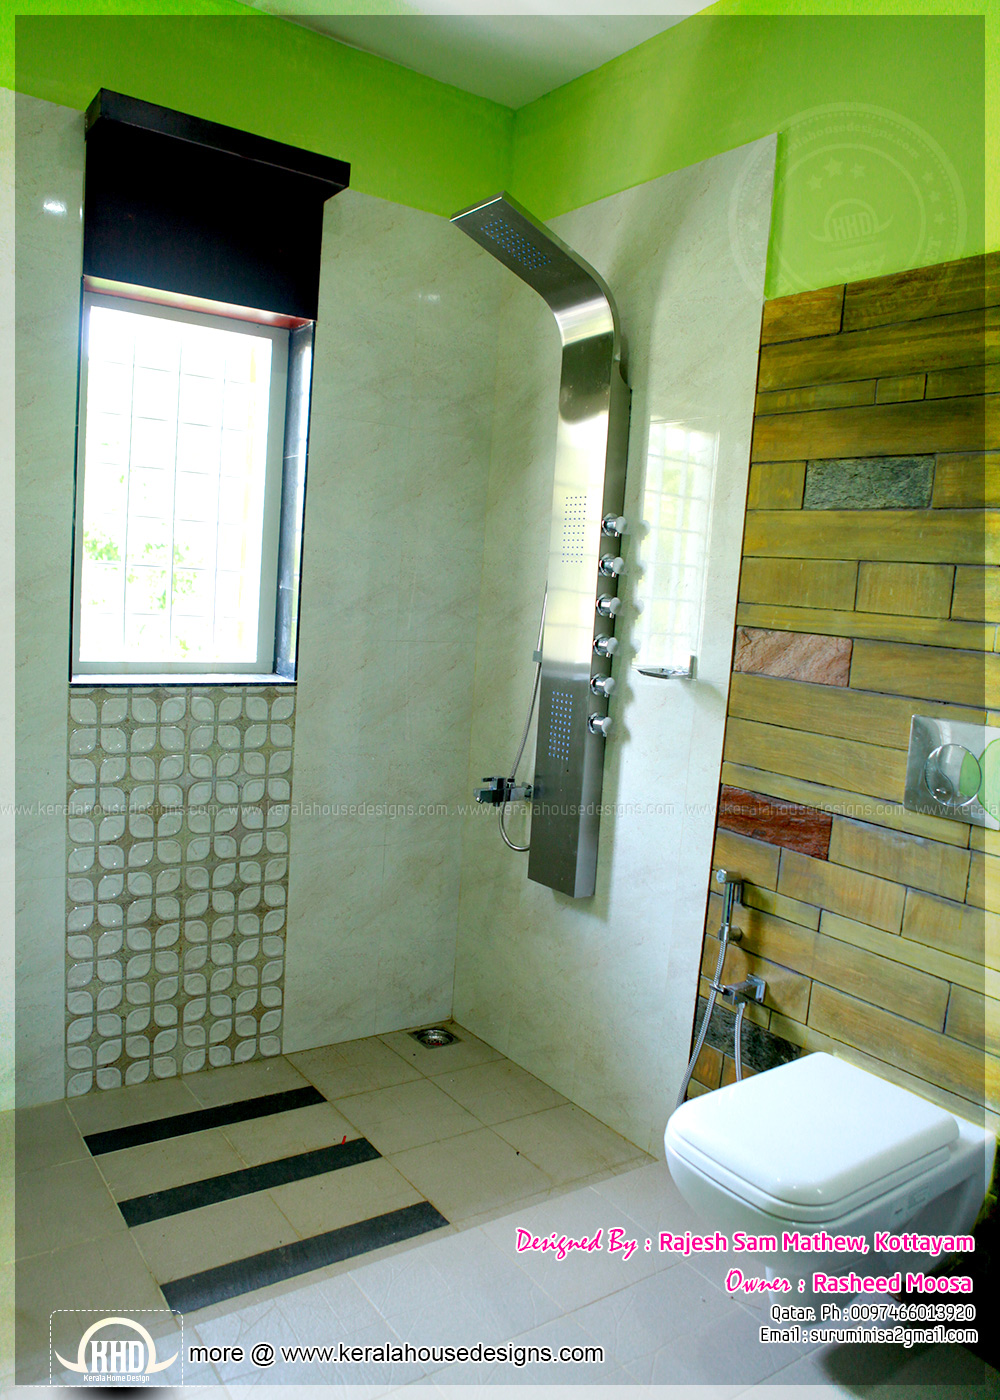 Modern Bathroom Design In Kerala kerala home design interior bath room example | rbservis